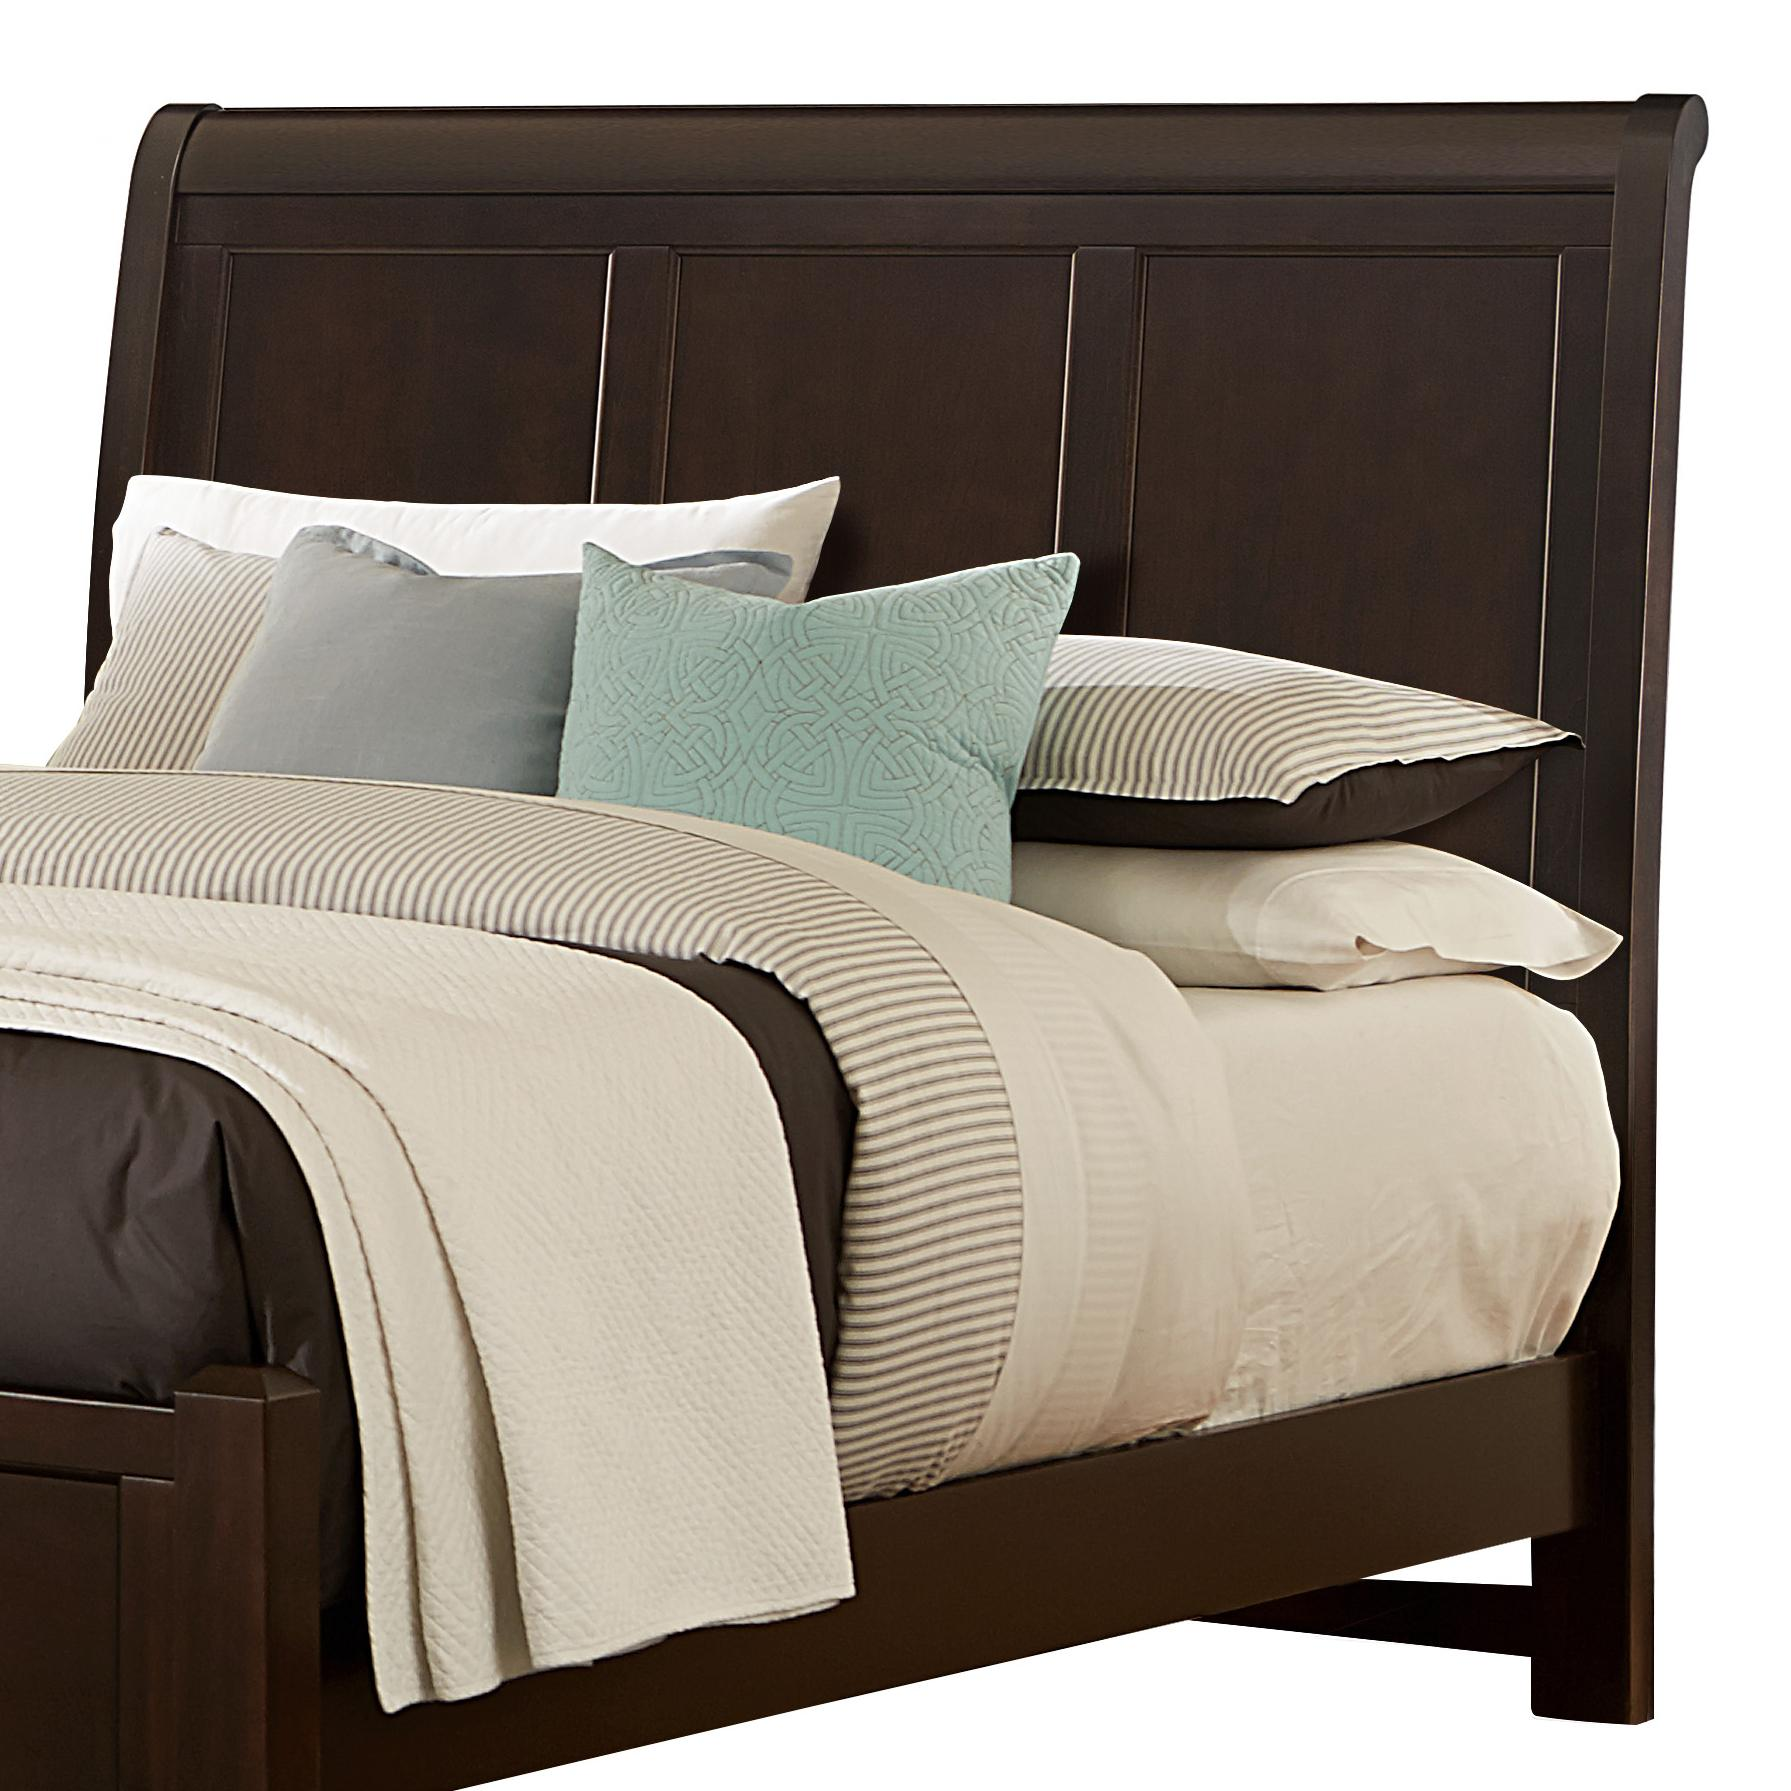 Vaughan Bassett Bonanza Queen Sleigh Headboard - Item Number: BB27-553